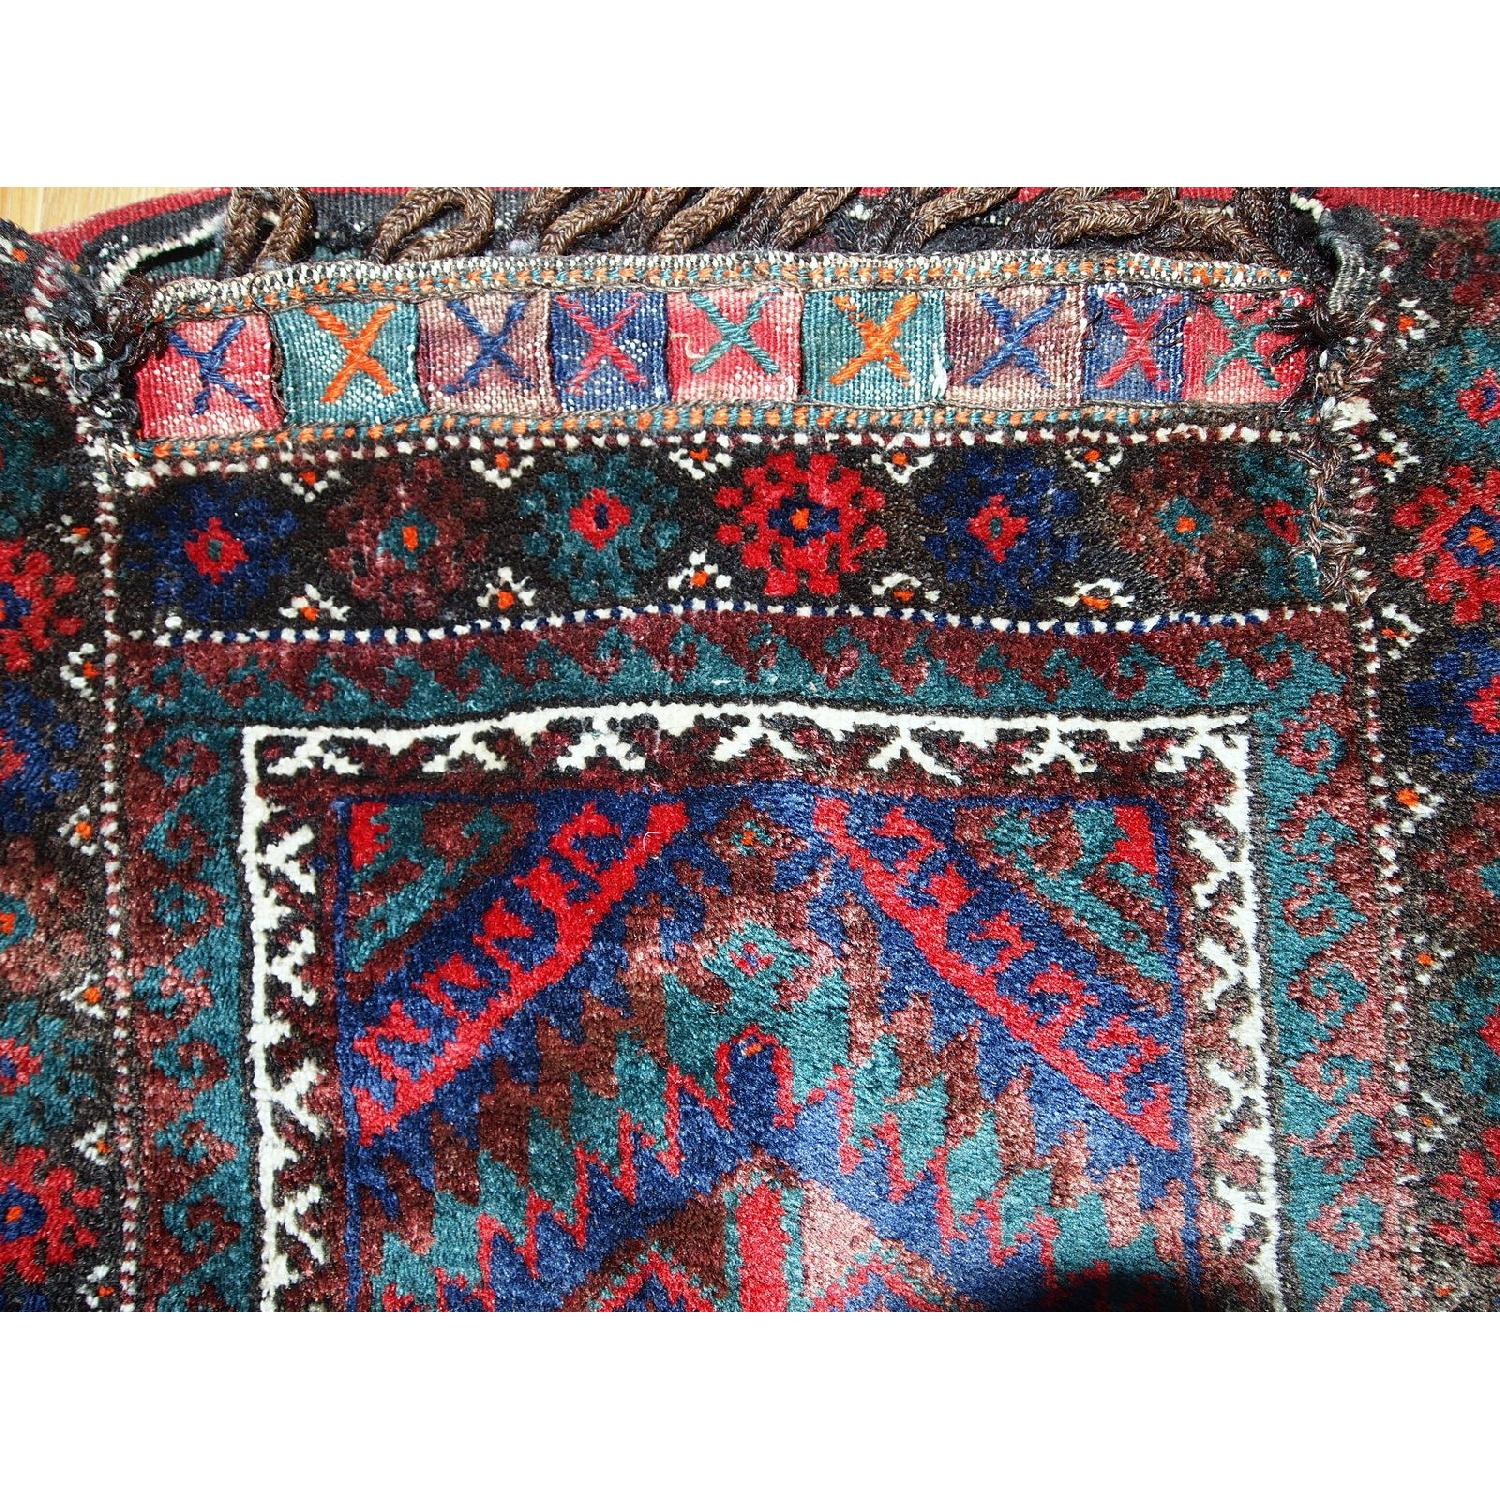 Antique Handmade Persian Kurdish Salt Bag Rug-10